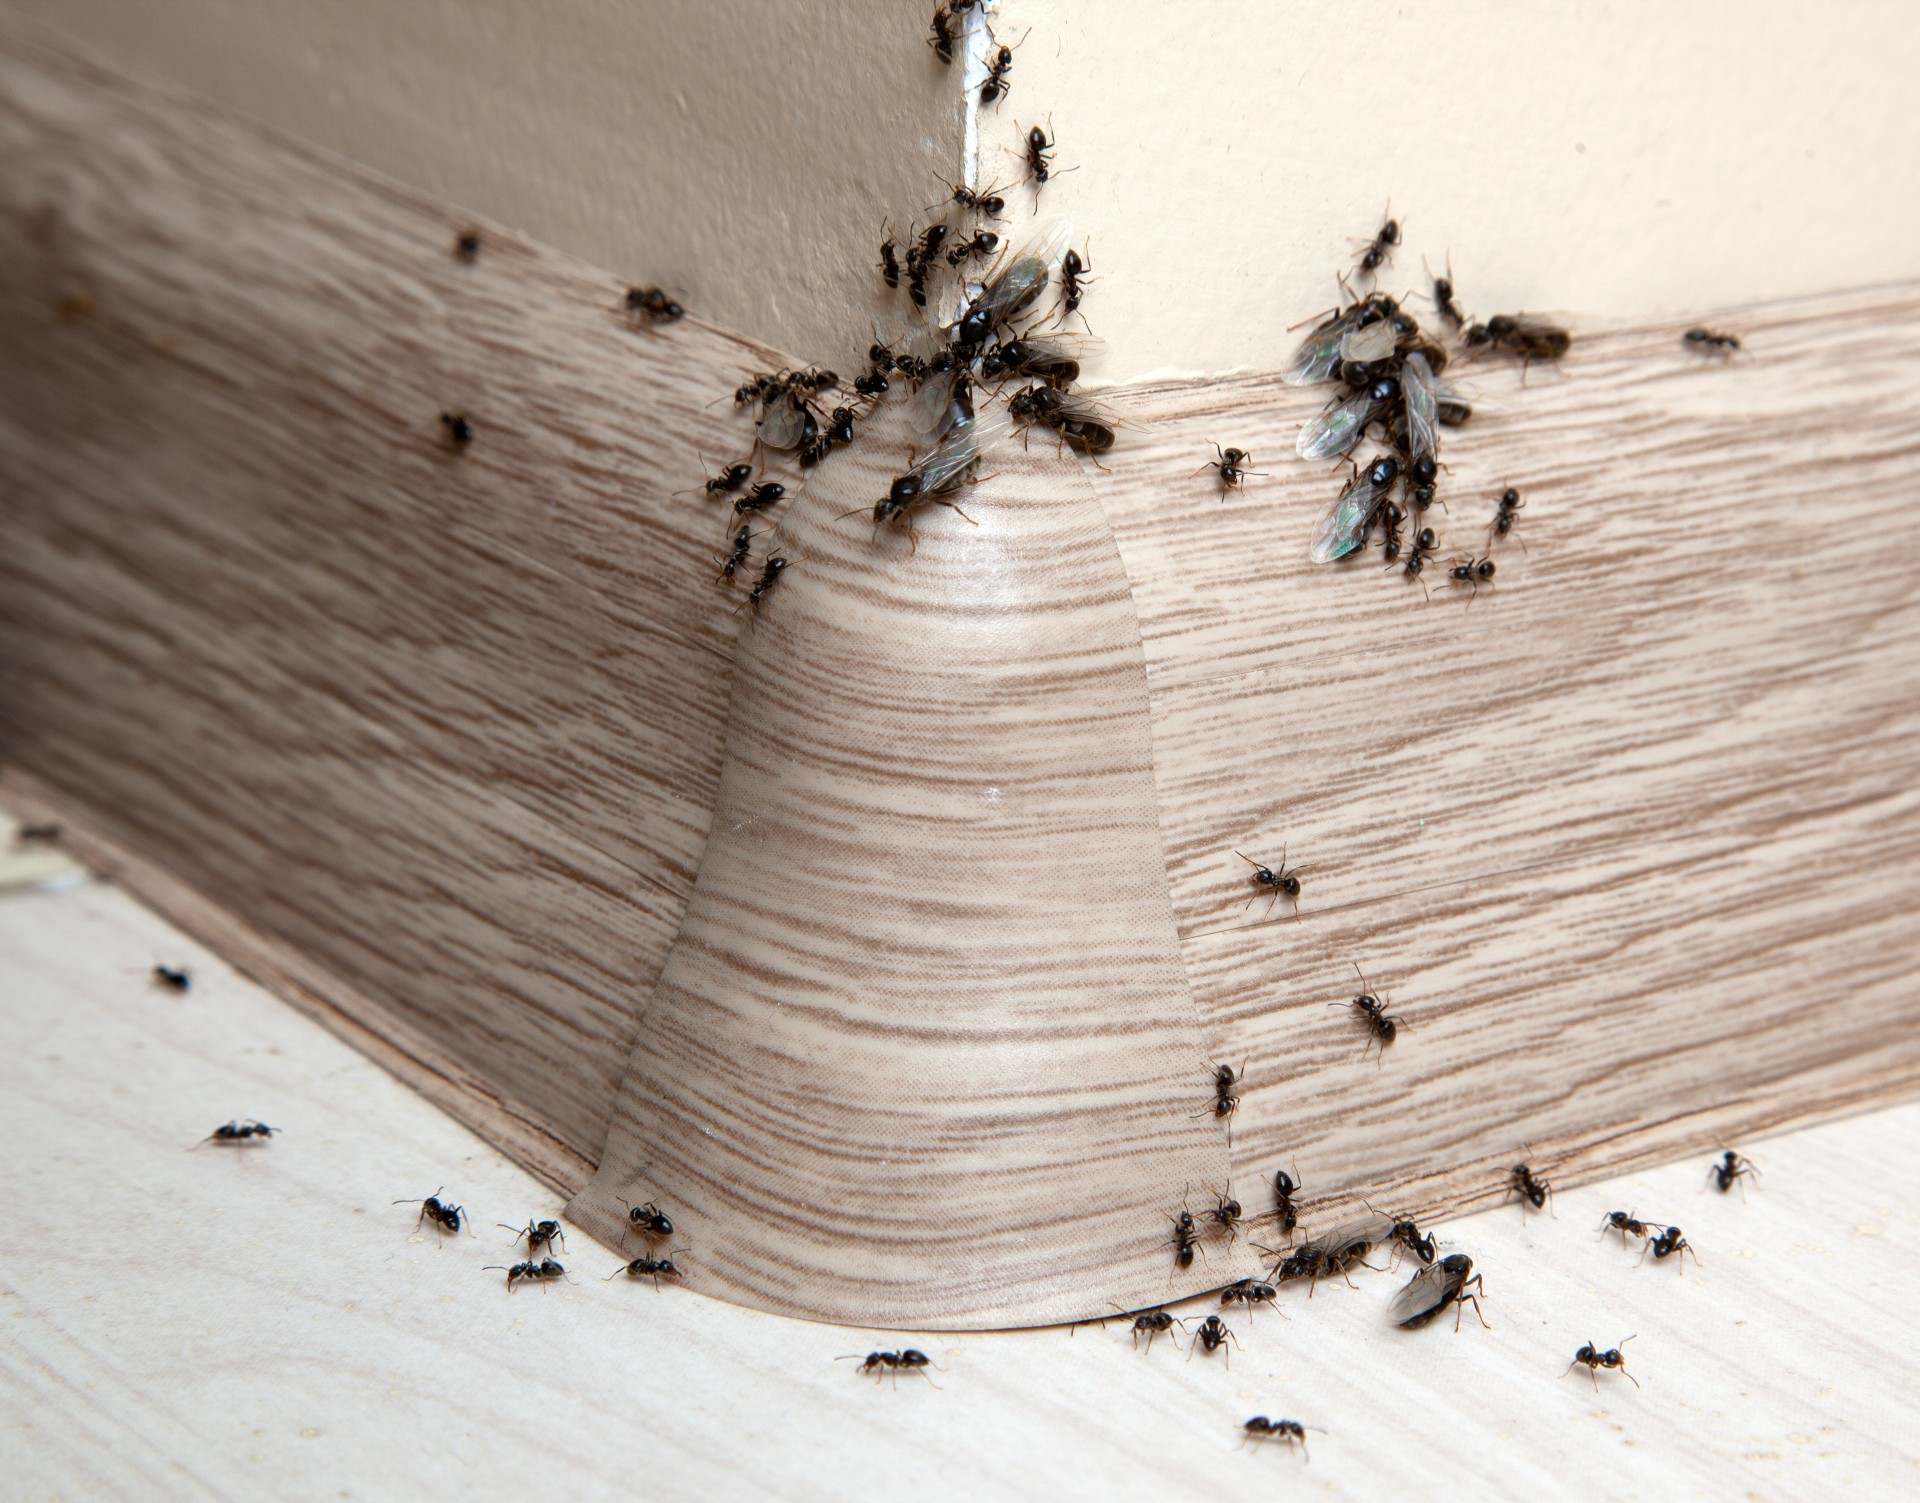 Ant Infestation, Pest Control in Weybridge, Oatlands, KT13. Call Now 020 8166 9746